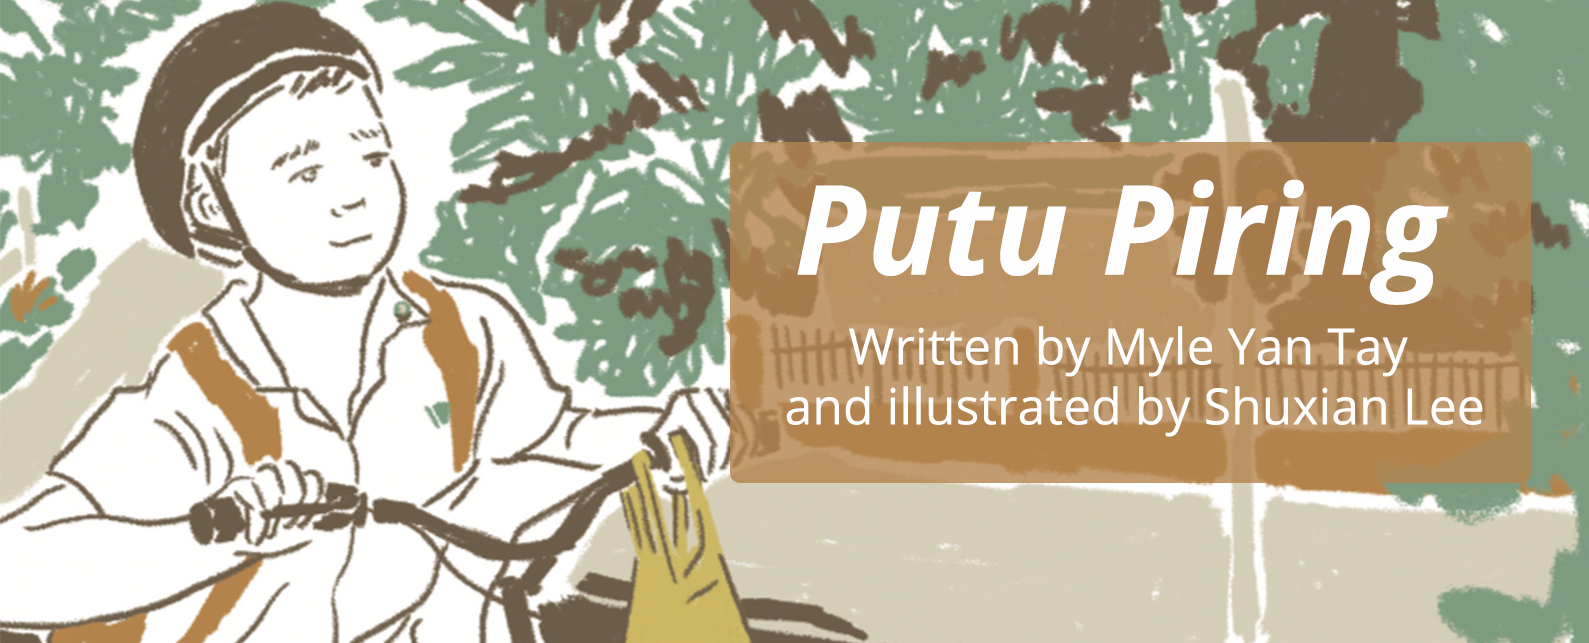 Putu Piring written by Myle Yan Tay and illustrated by Shuxian Lee